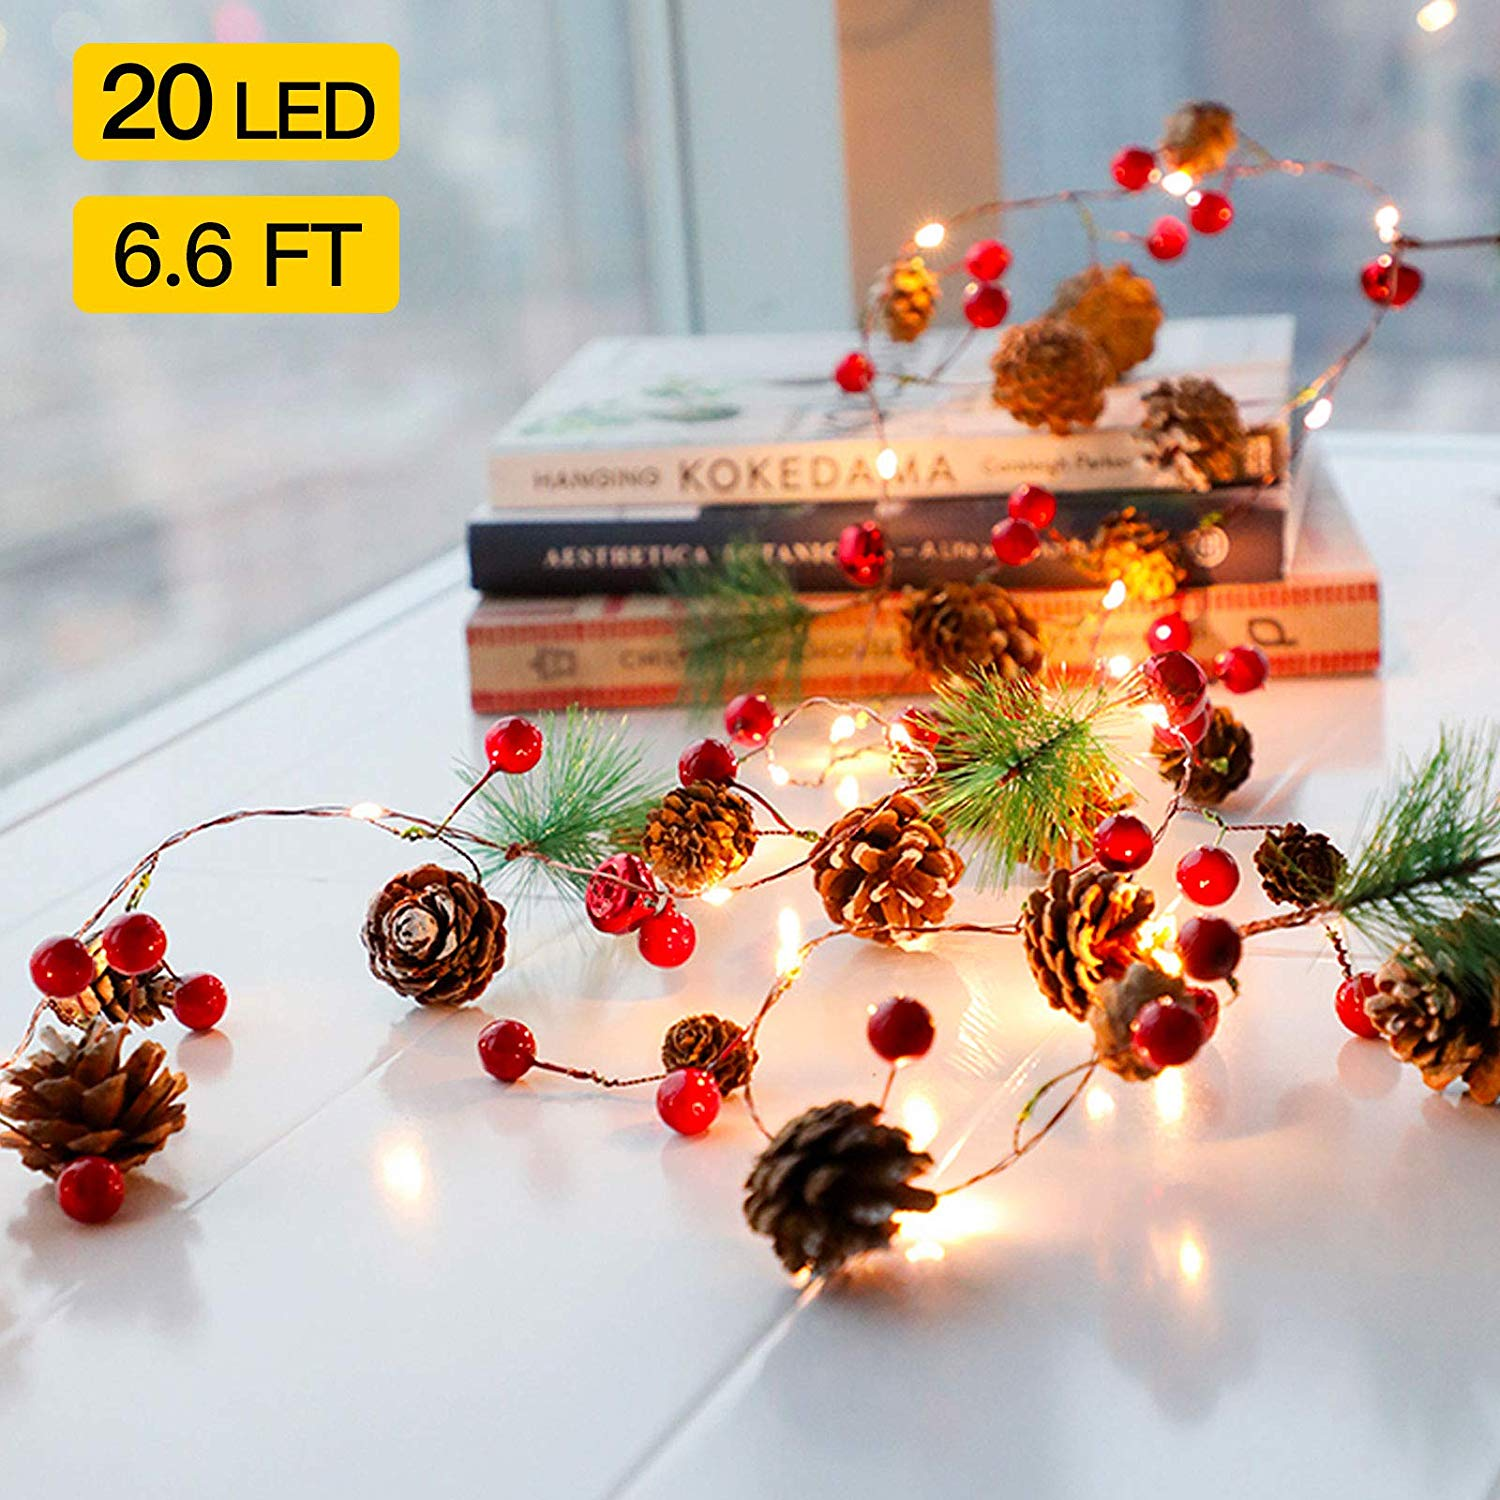 Christmas Pine Cone Led String Light Decor Pinecone Christmas Tree Deer Lights Garland Lights For Winter Holiday New Year Decor